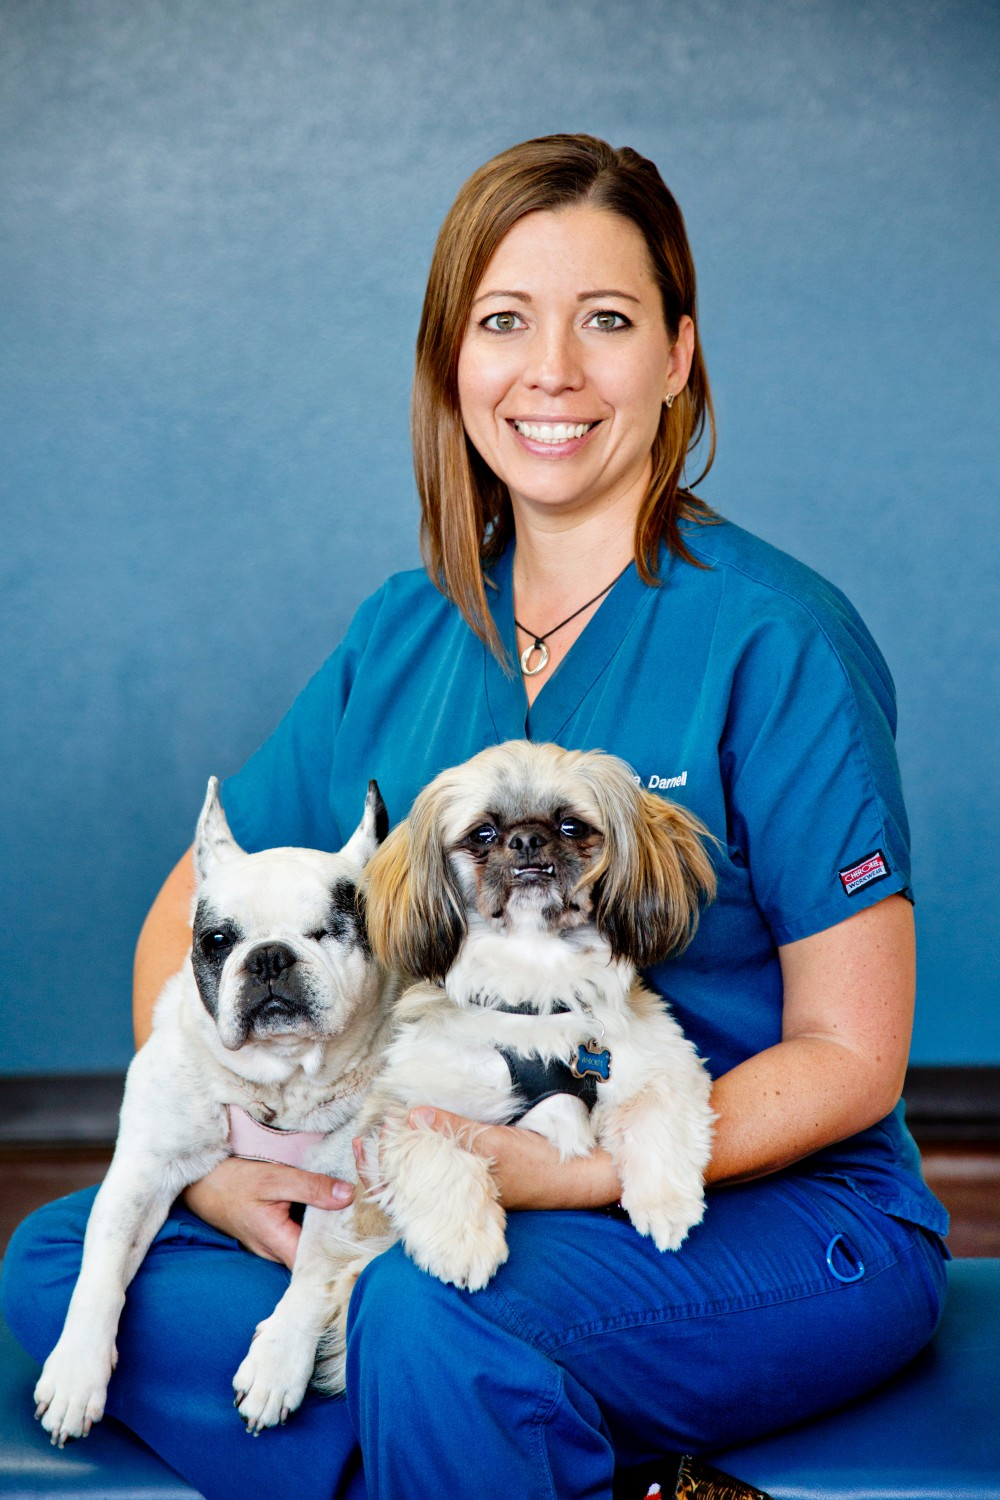 Dr. D and puppies resized to 300 pixels wide